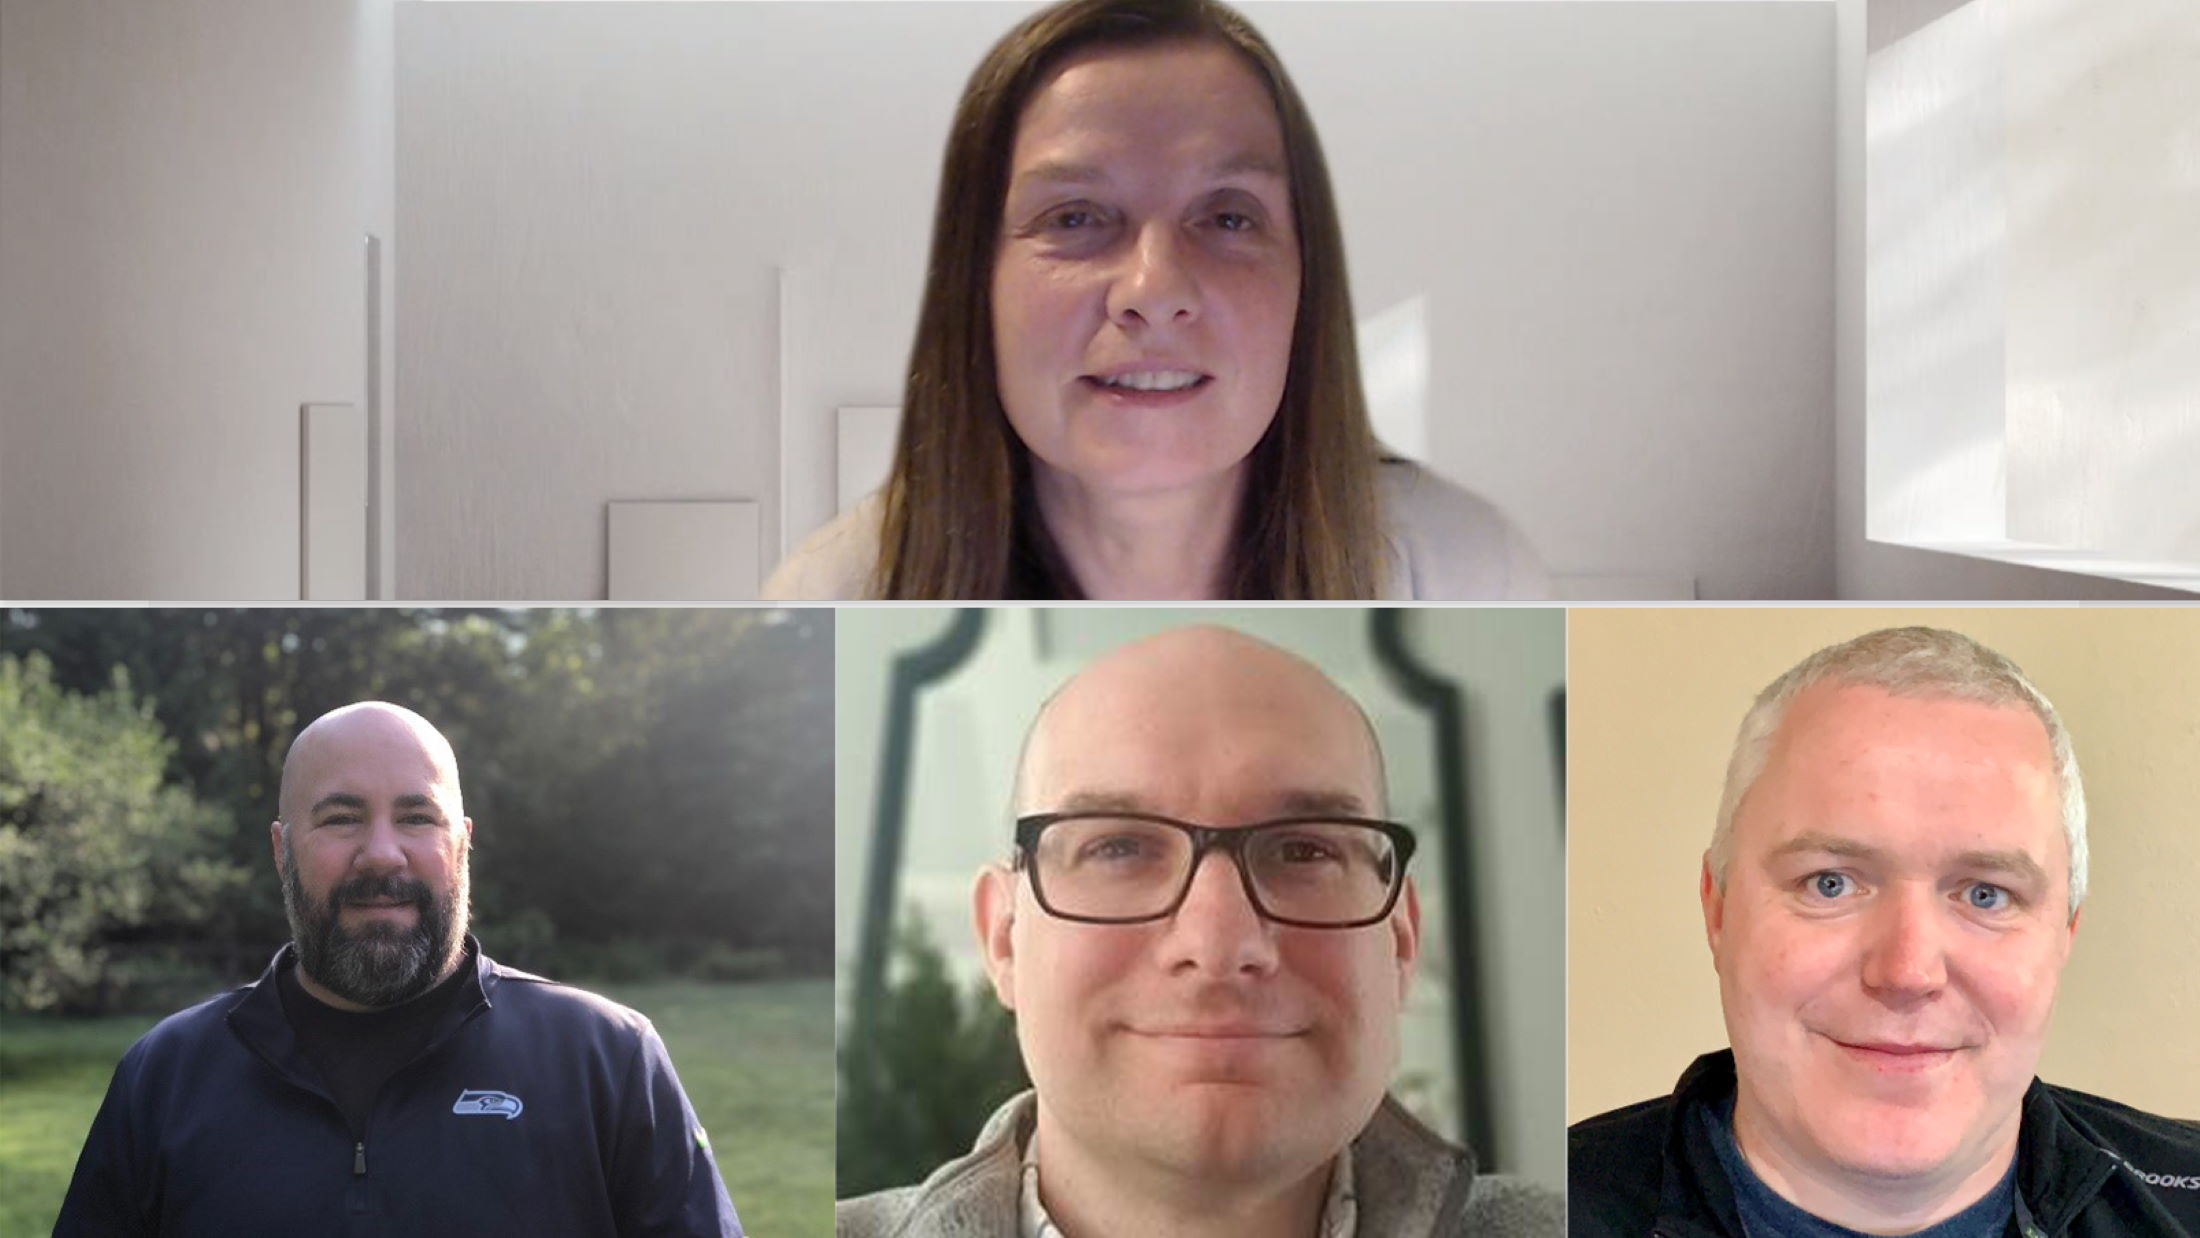 McHale, Gagnon, Gray, and O'Flaherty pose for a photo from their home offices via a Microsoft Teams call.